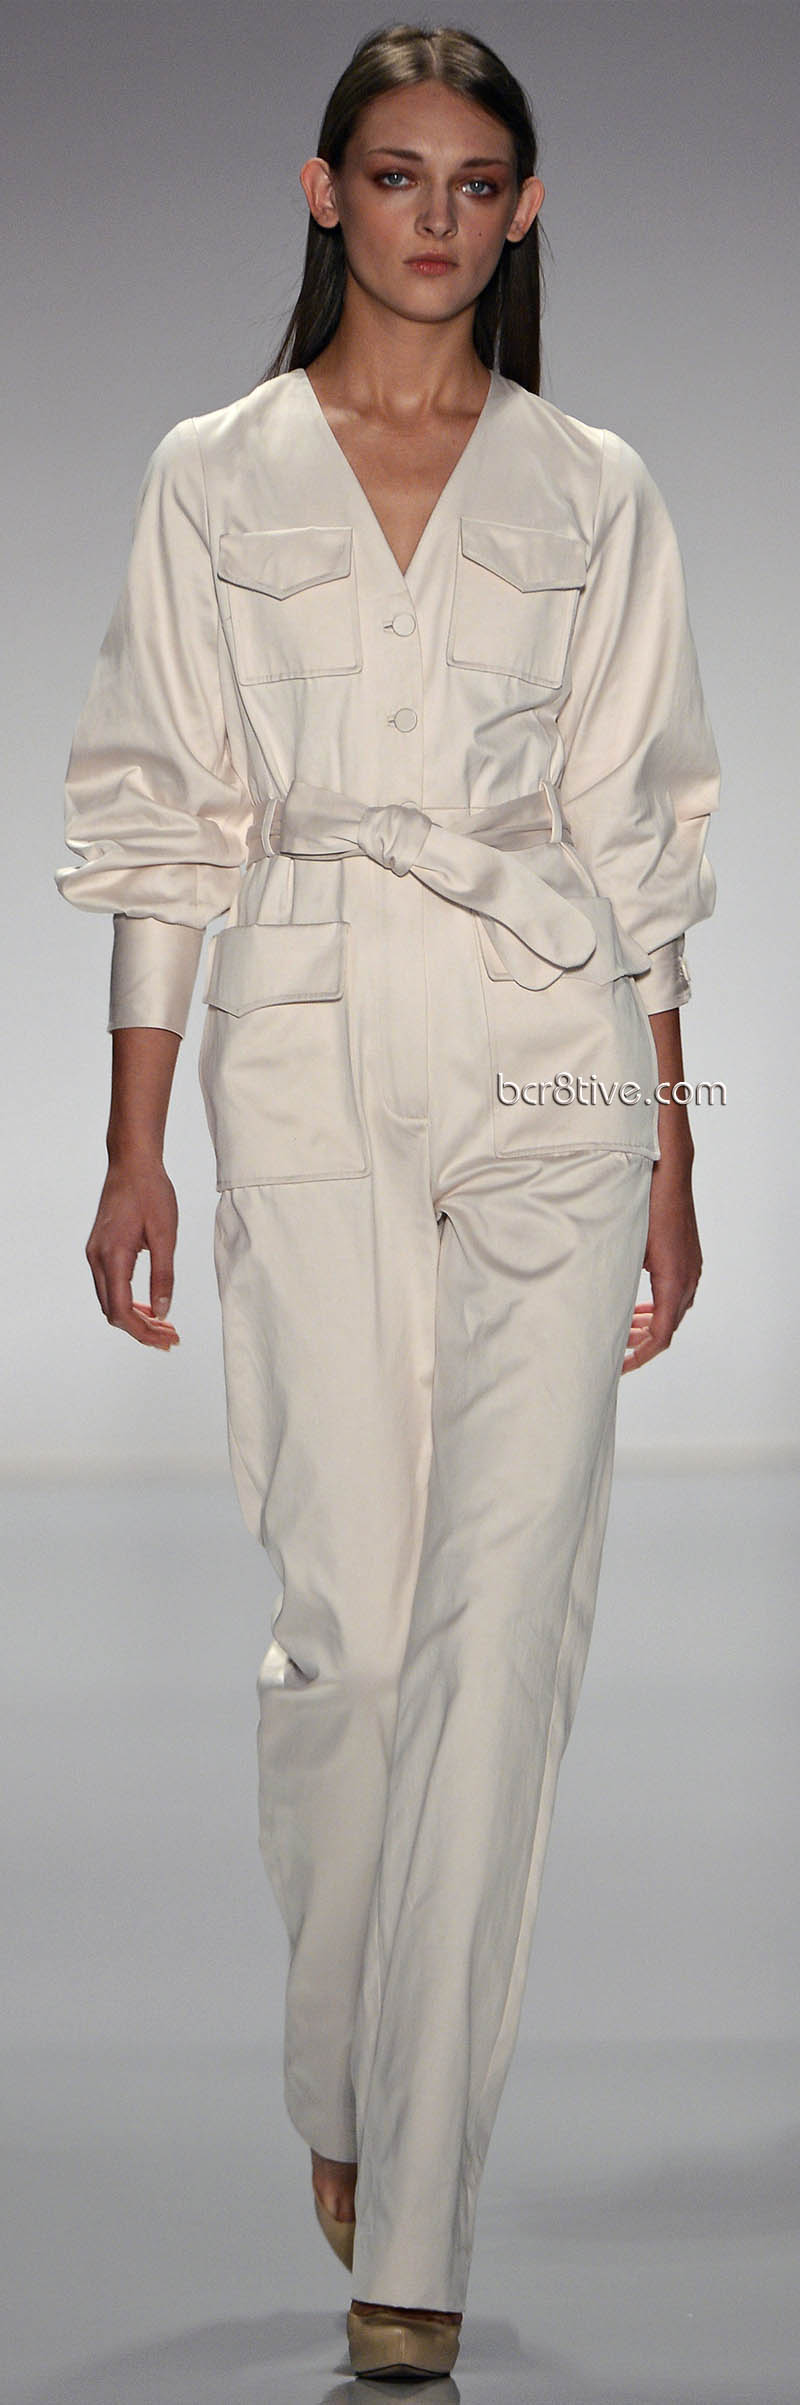 Jill Stuart Spring Summer 2013 Ready To Wear